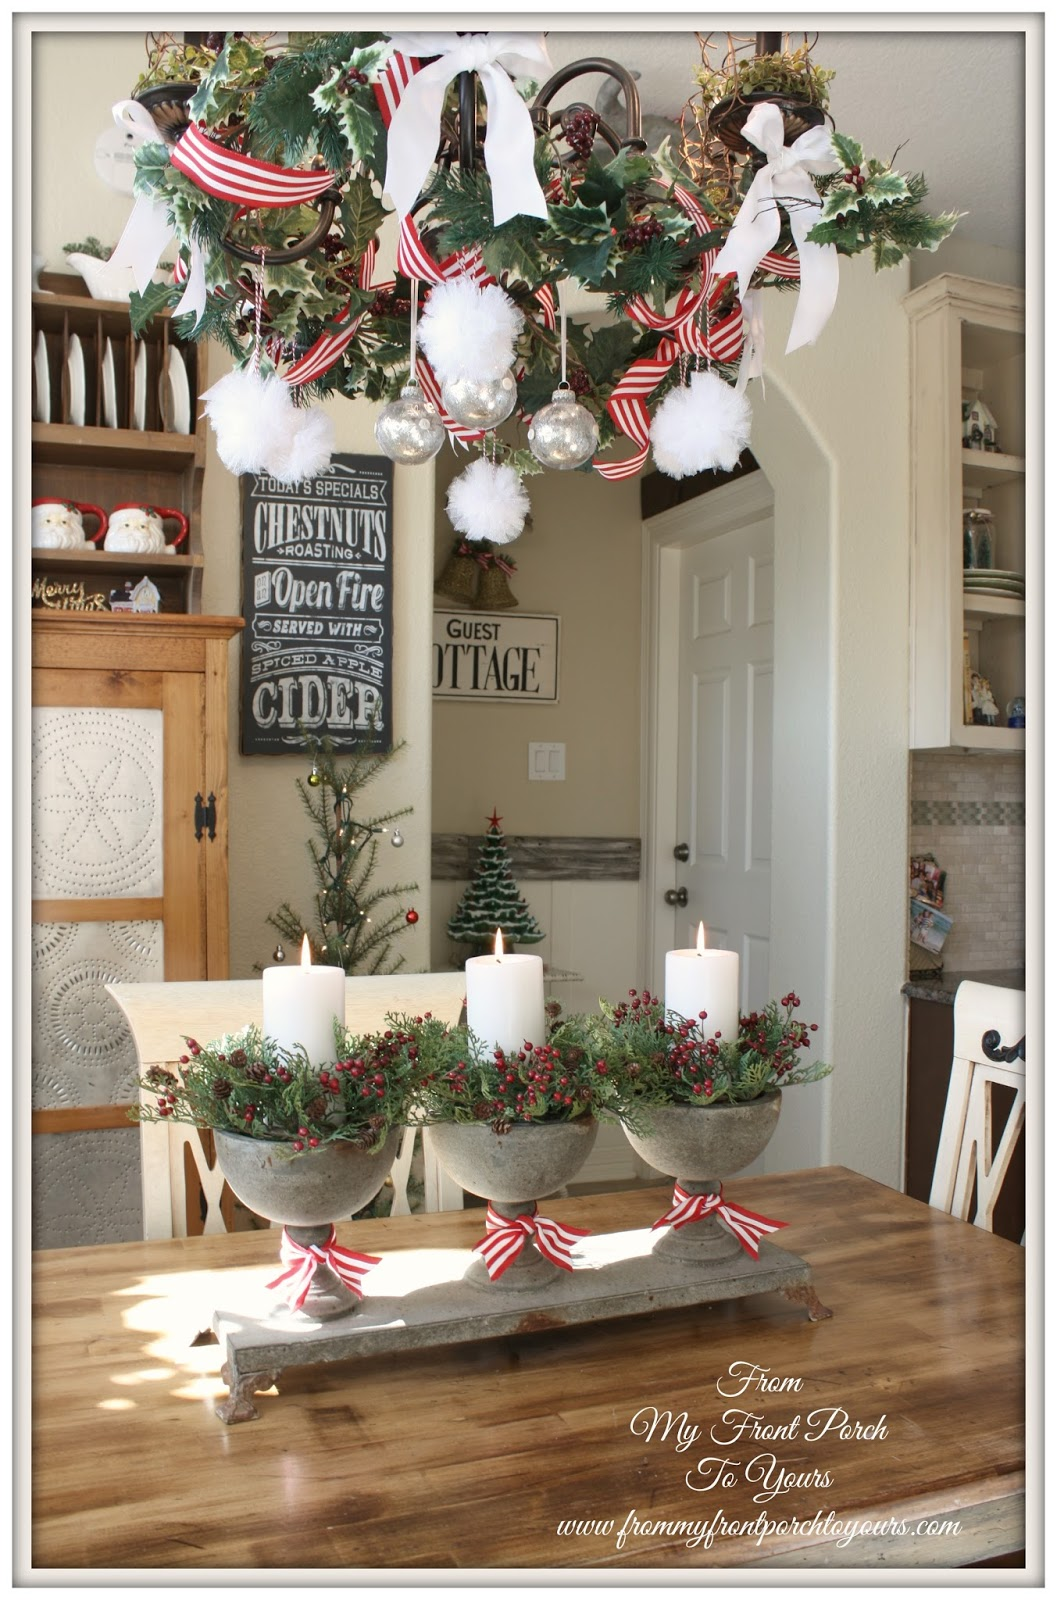 Top Diy Home Decor Blogs From My Front Porch To Yours French Farmhouse Holiday